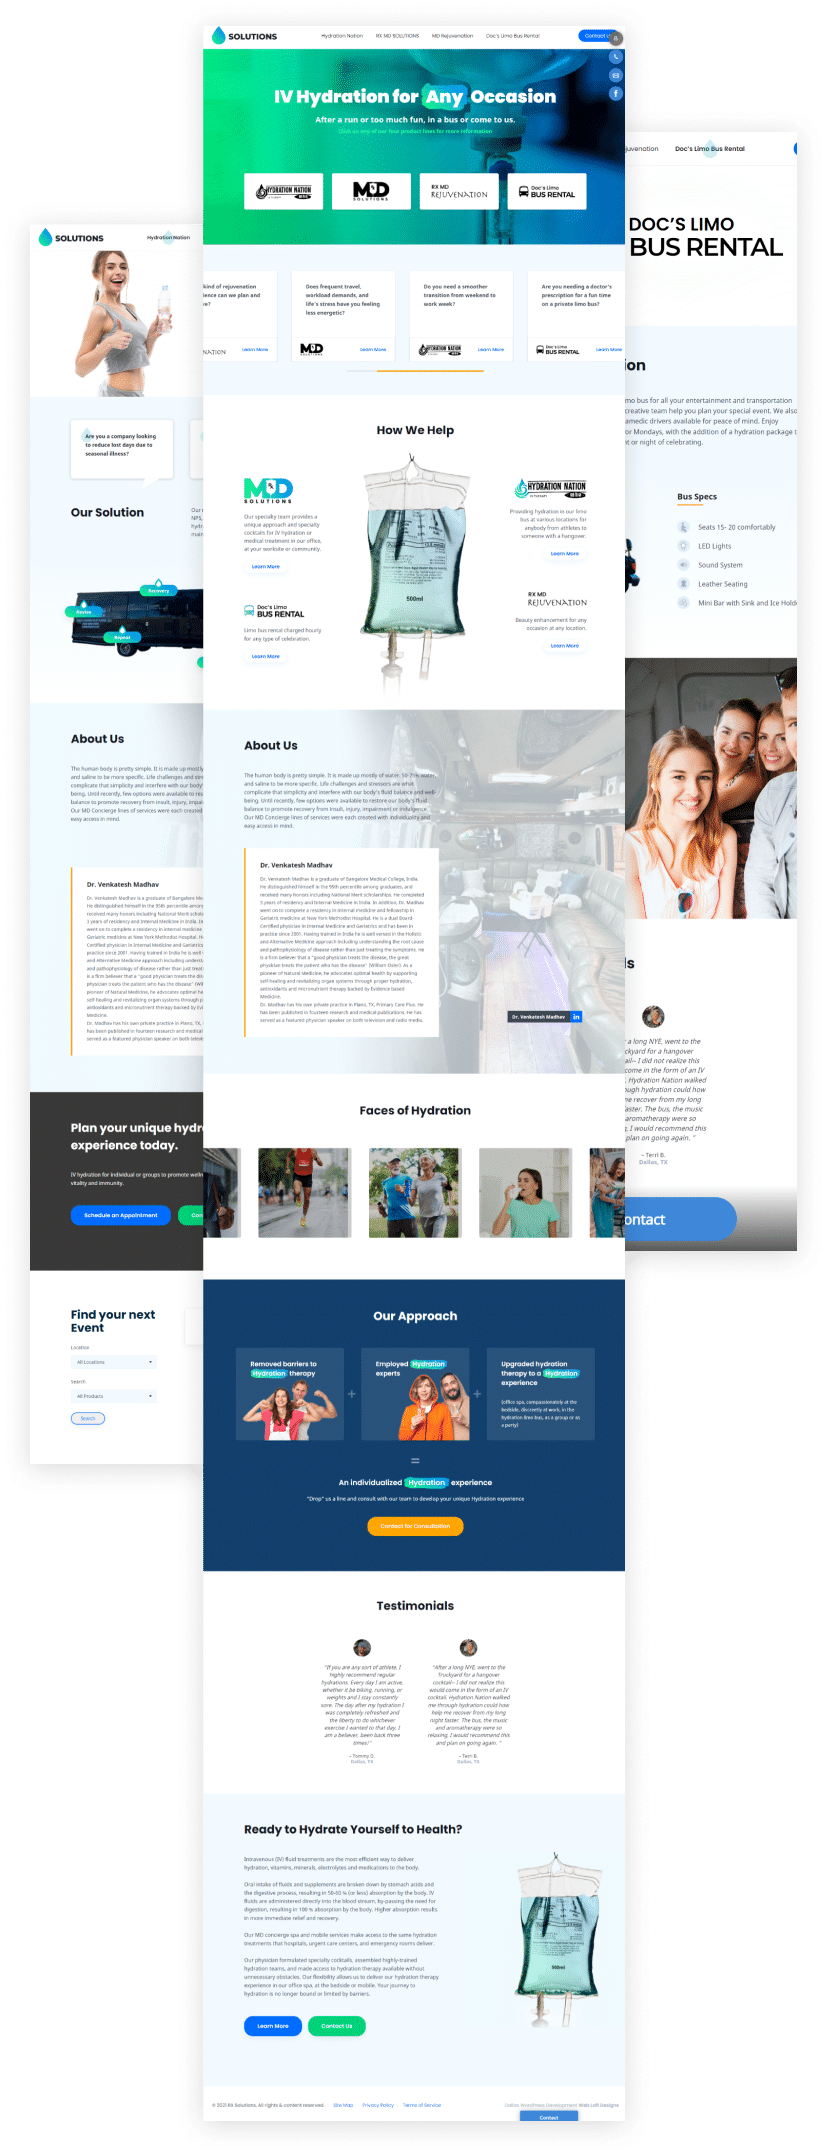 RX MD Solutions Site - ecommerce websites Dallas – ecommerce websites Plano - Shopify website builders - ecommerce website builders Dallas – ecommerce website builders Plano - Magento website builders - WooCommerce website builders – Web Loft Designs Dallas and Plano